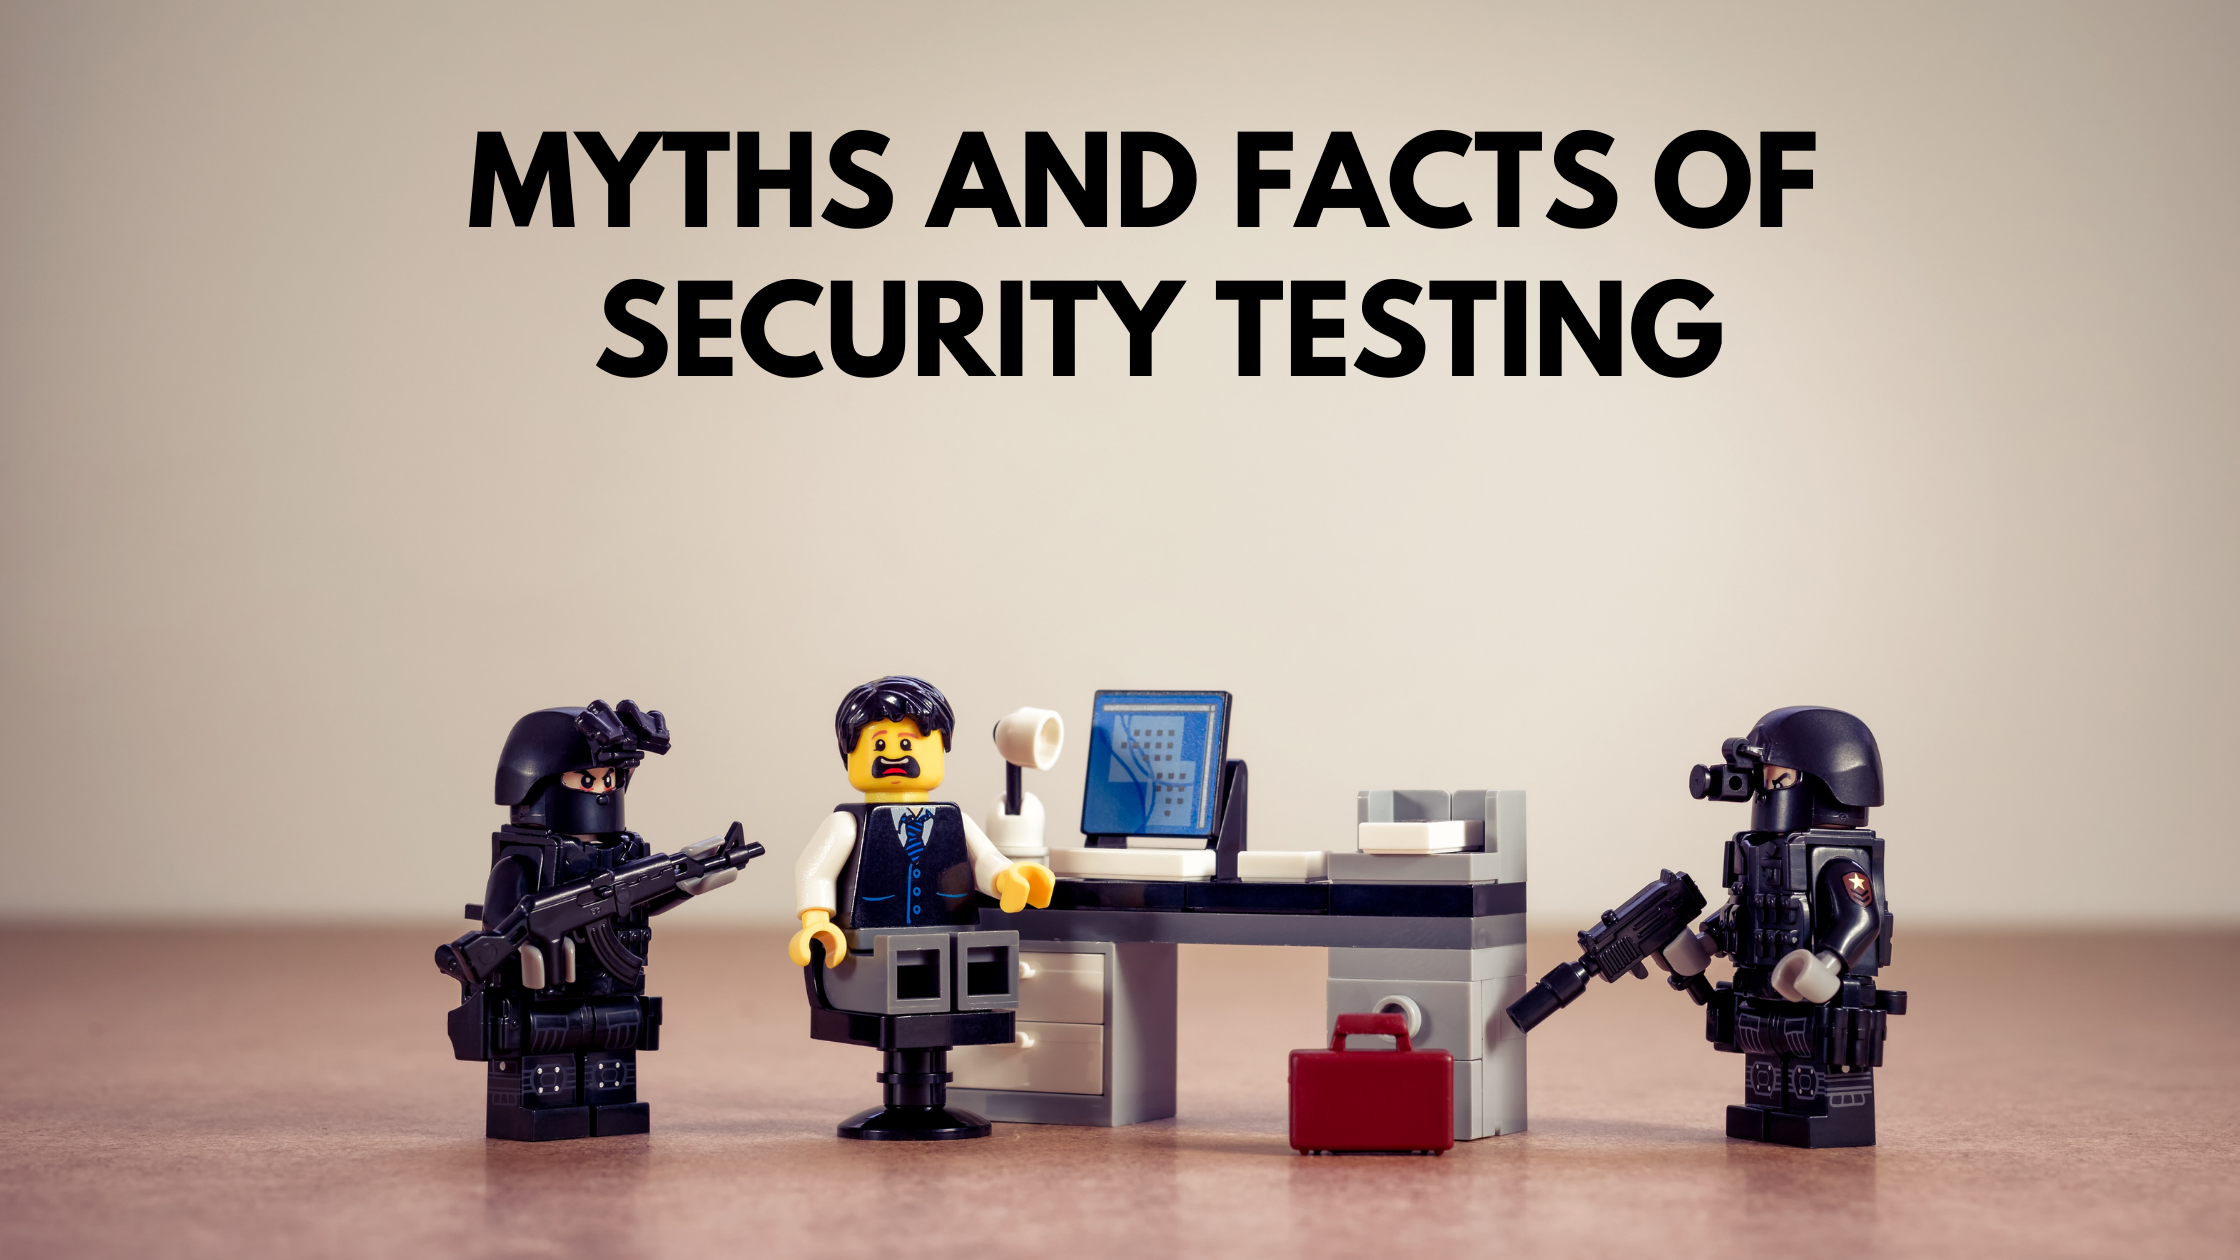 Myths and Facts of Security Testing